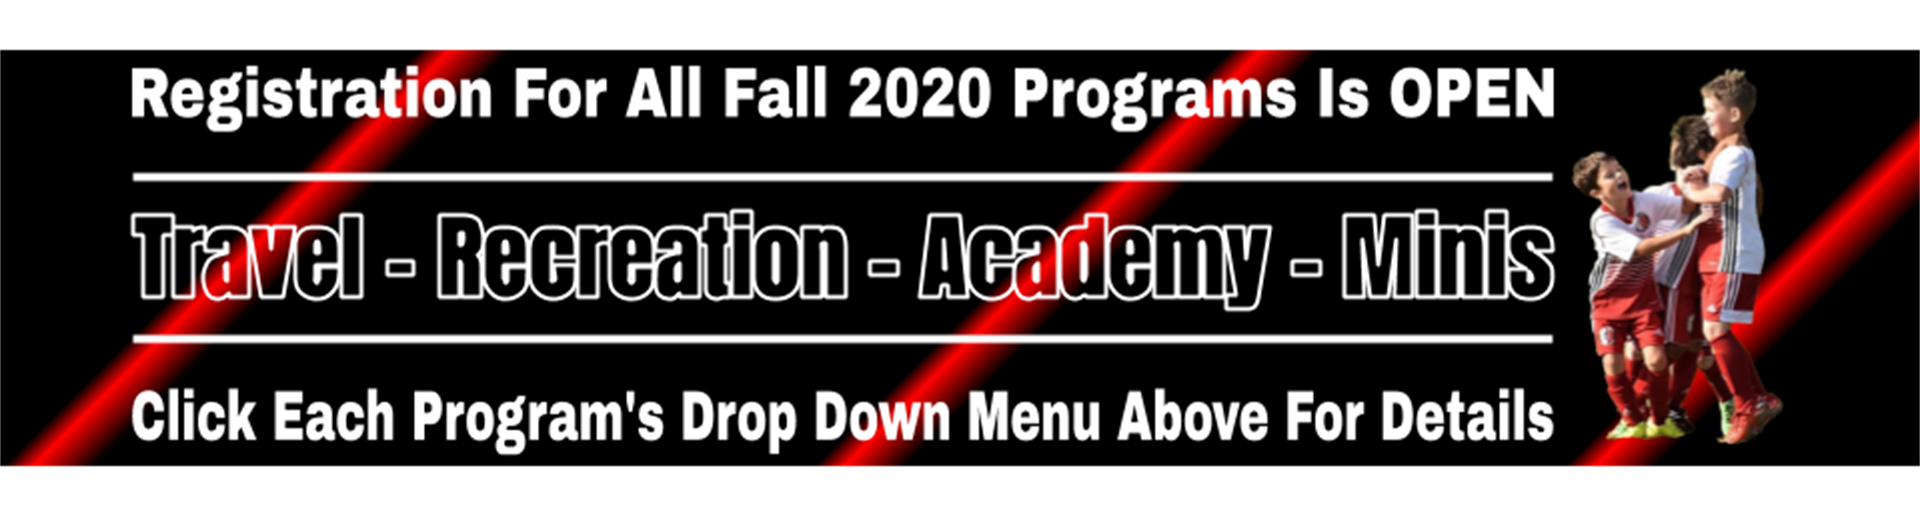 ALL FALL 2020 REGISTRATIONS NOW OPEN